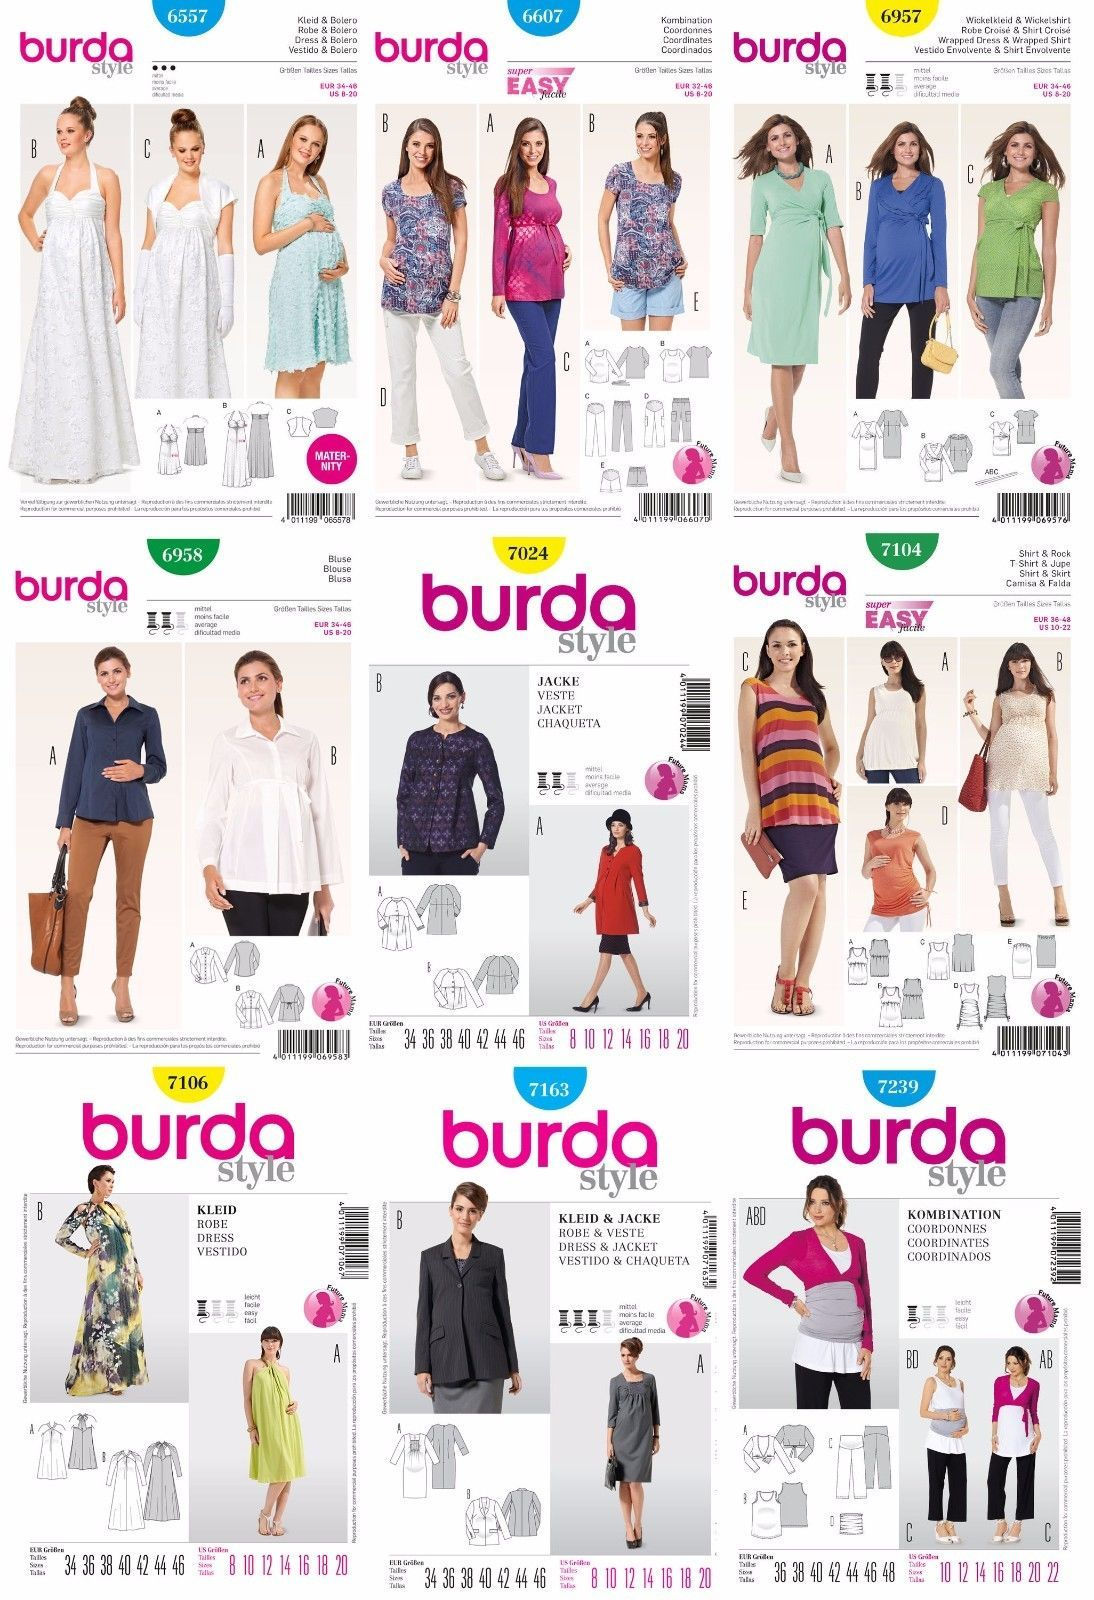 83f1fac46348c $3.99 - Burda Sewing Patterns Misses' Maternity Clothes Future Mama Dresses  Outfits Pant #ebay #Home & Garden